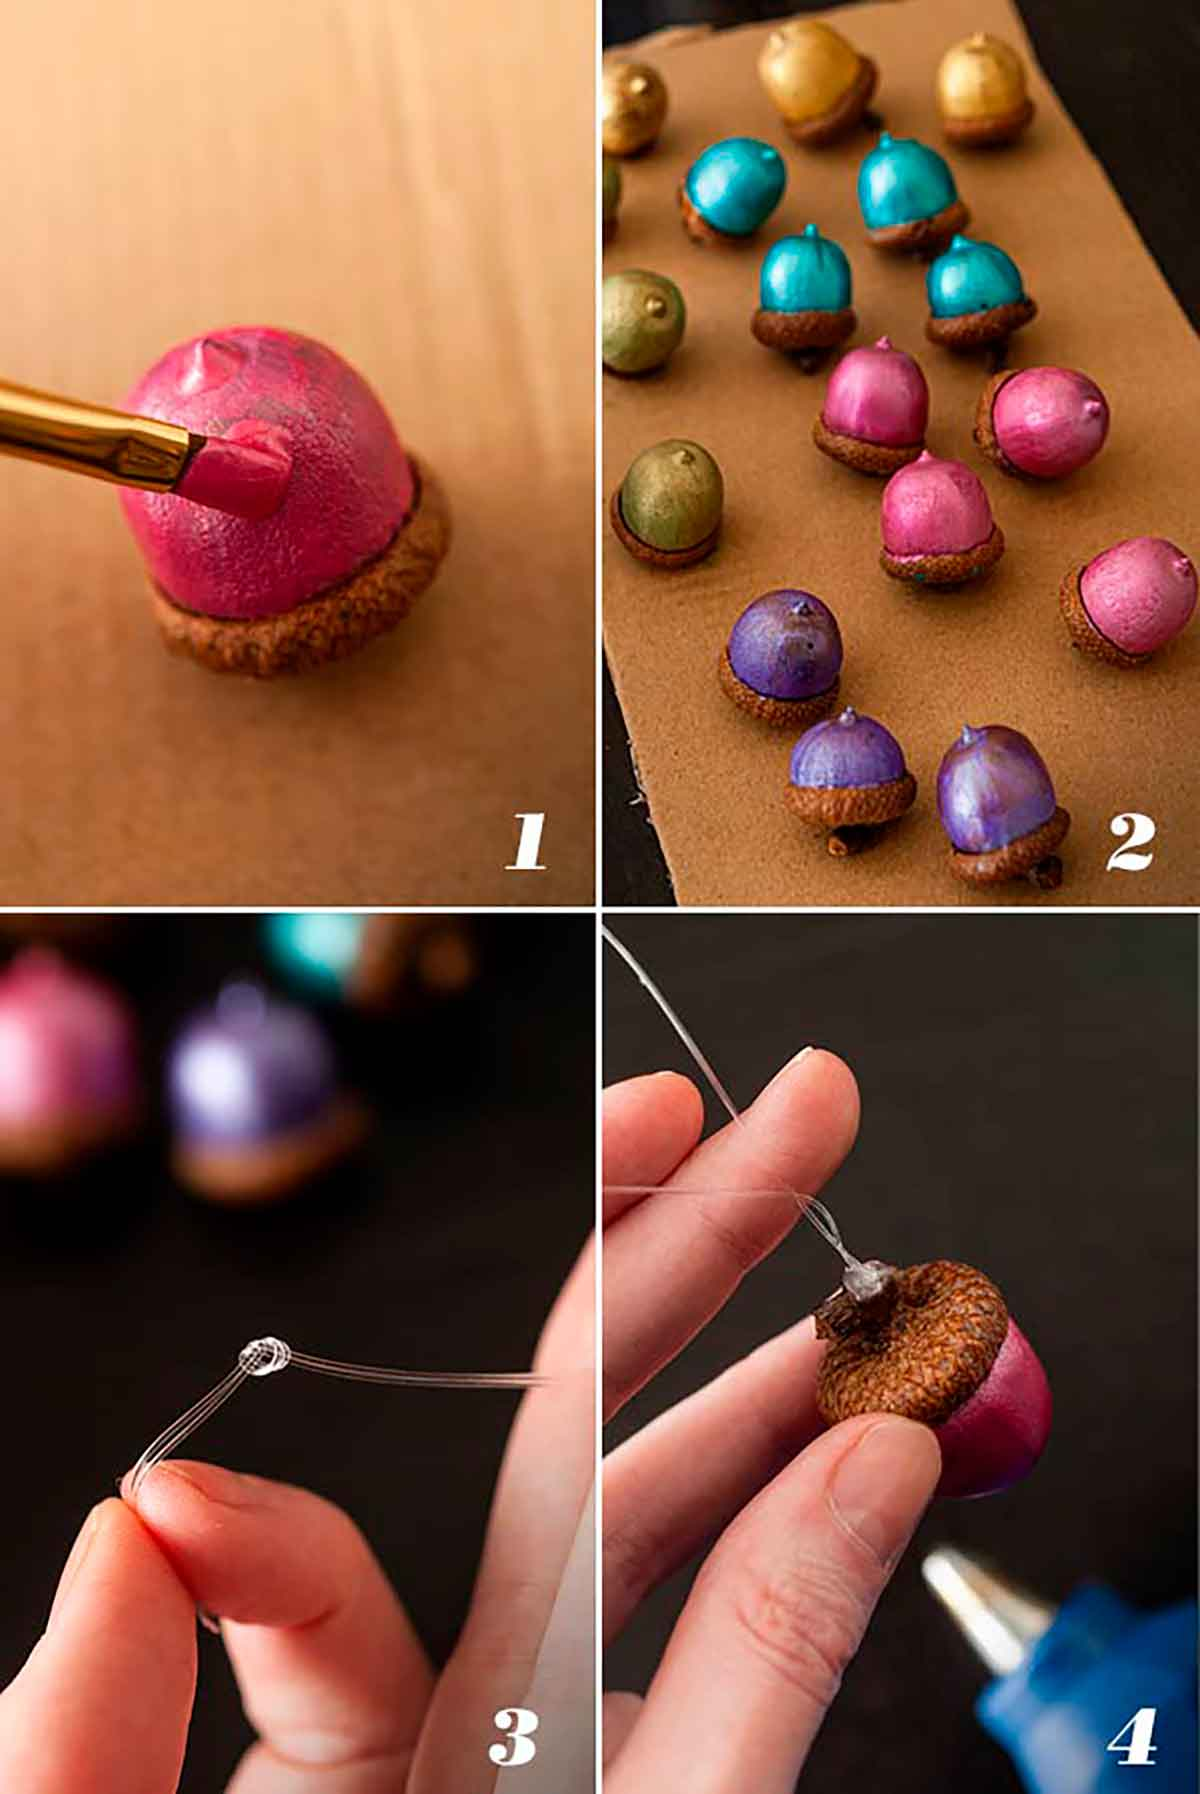 A collage of 4 numbered images showing how to paint acorns and glue string to the caps.